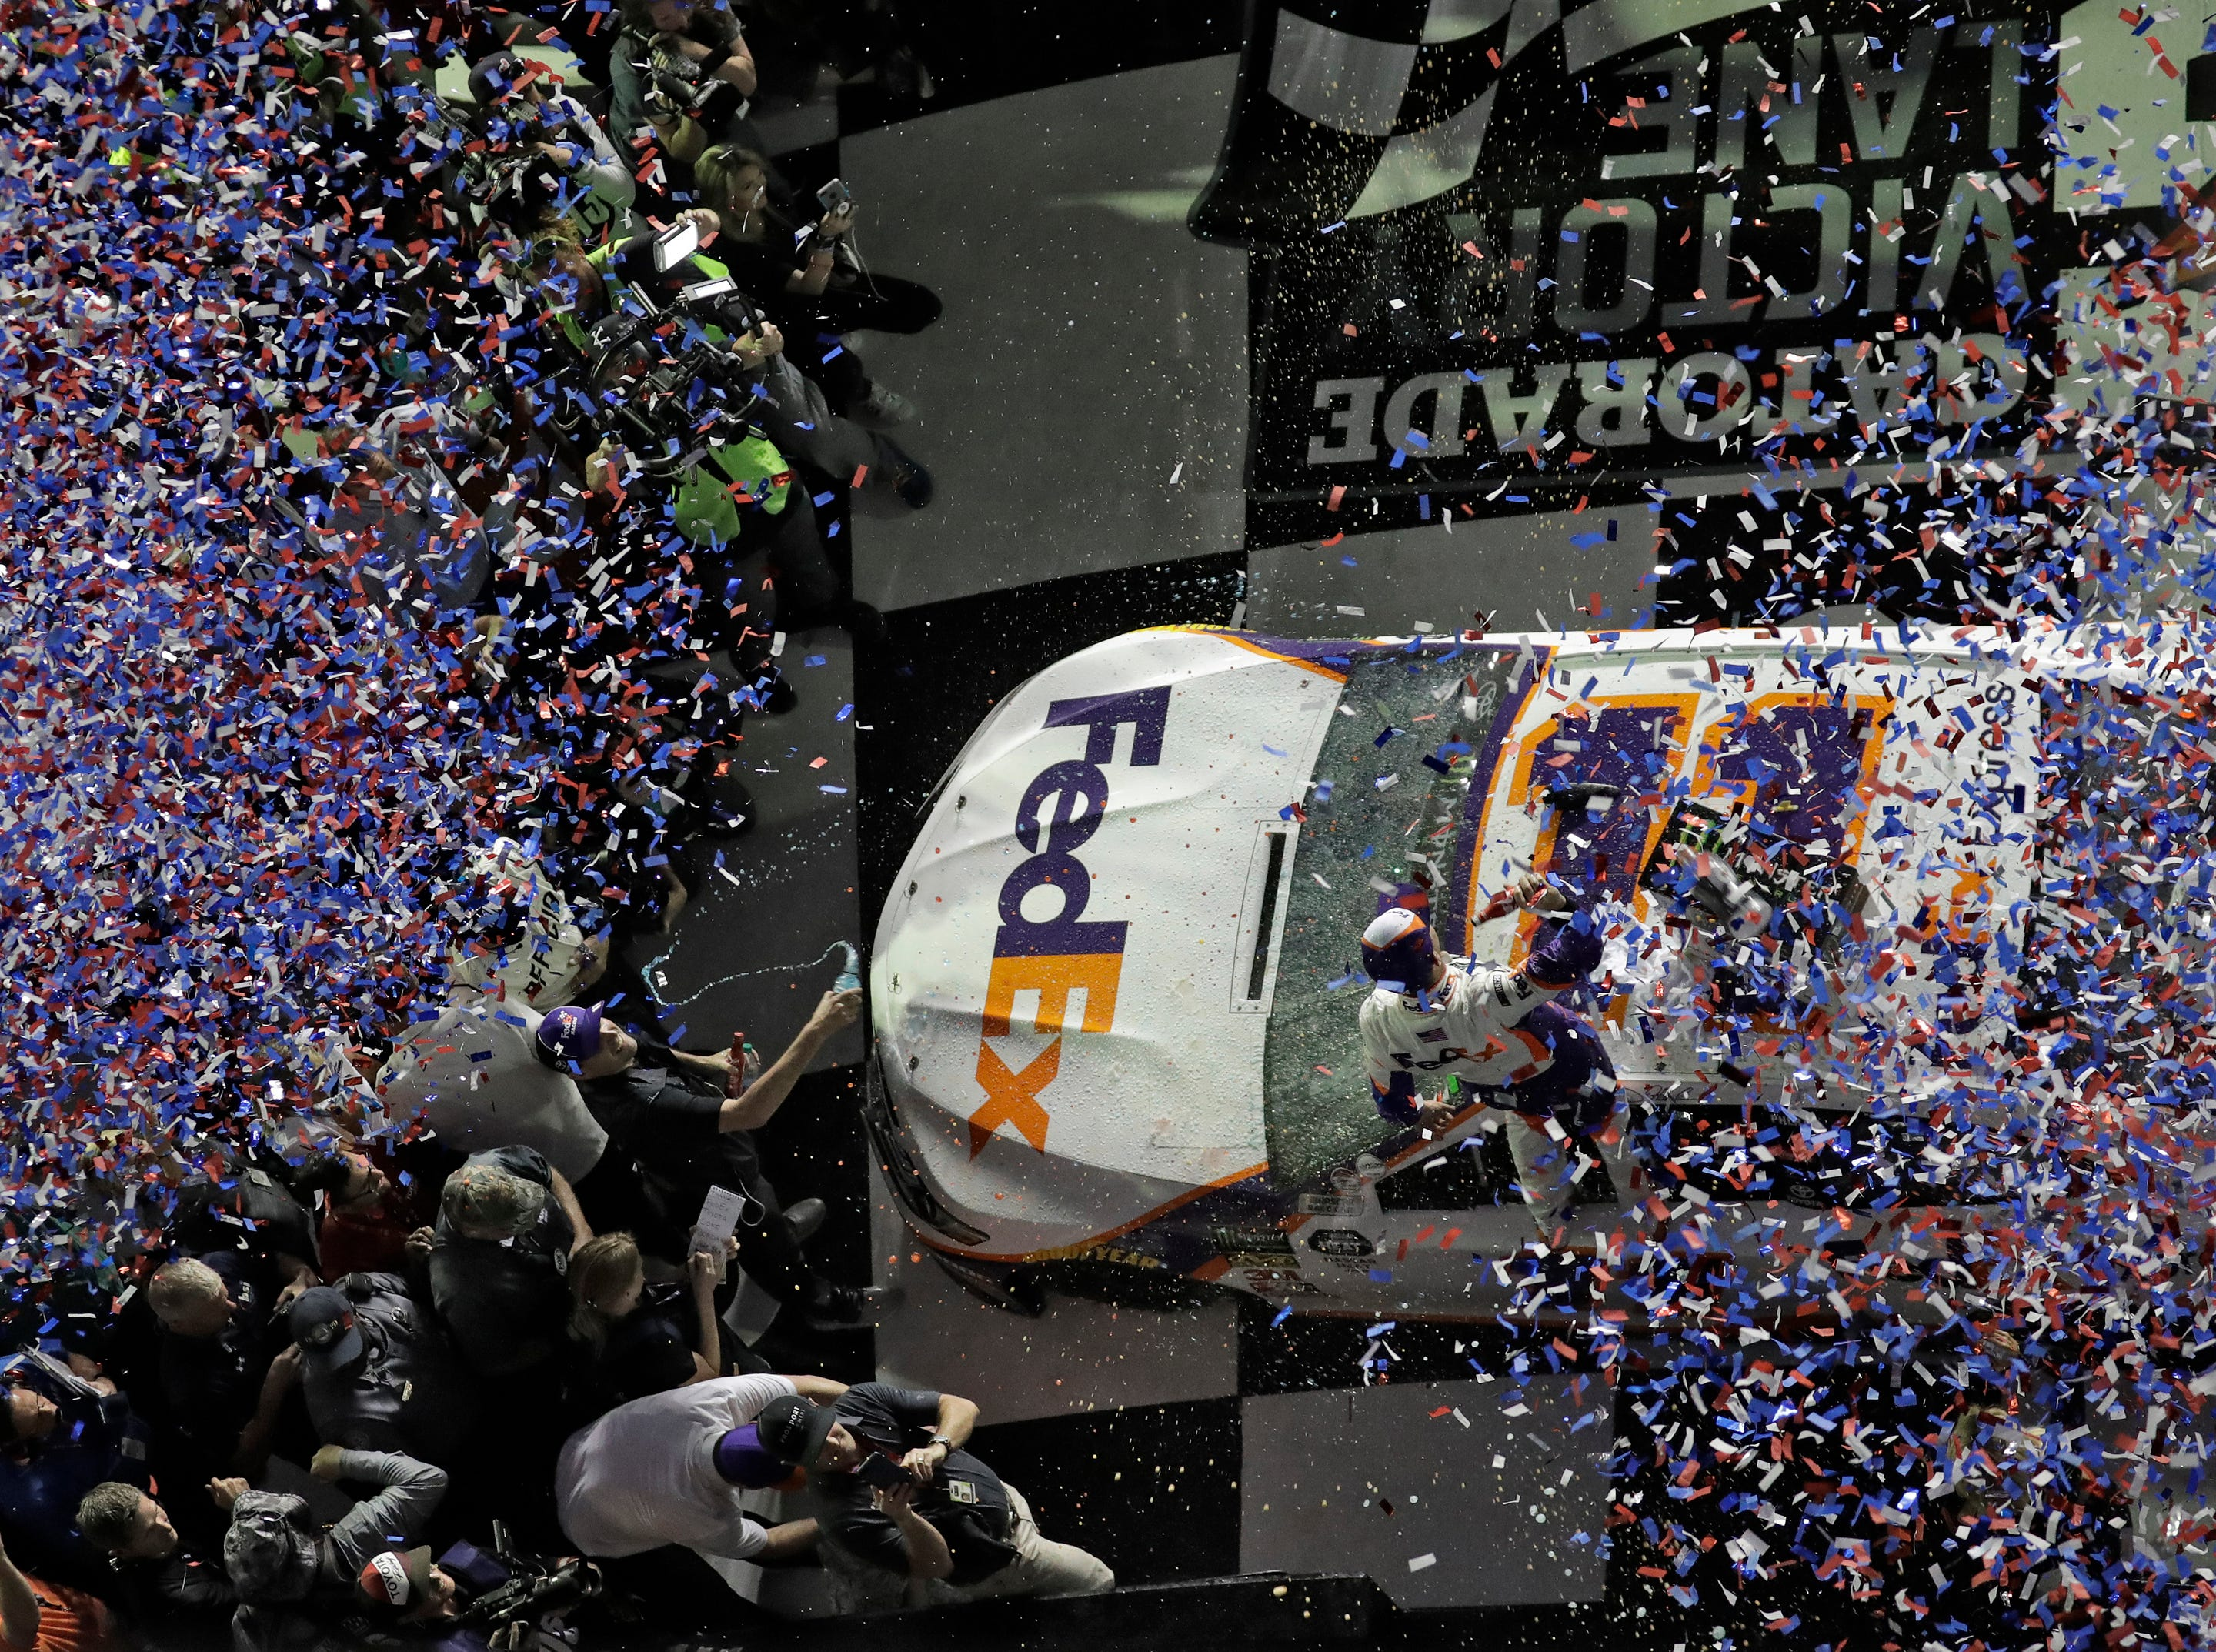 Denny Hamlin is showered with confetti in Victory Lane after winning a NASCAR Daytona 500 auto race Sunday, Feb. 17, 2019.